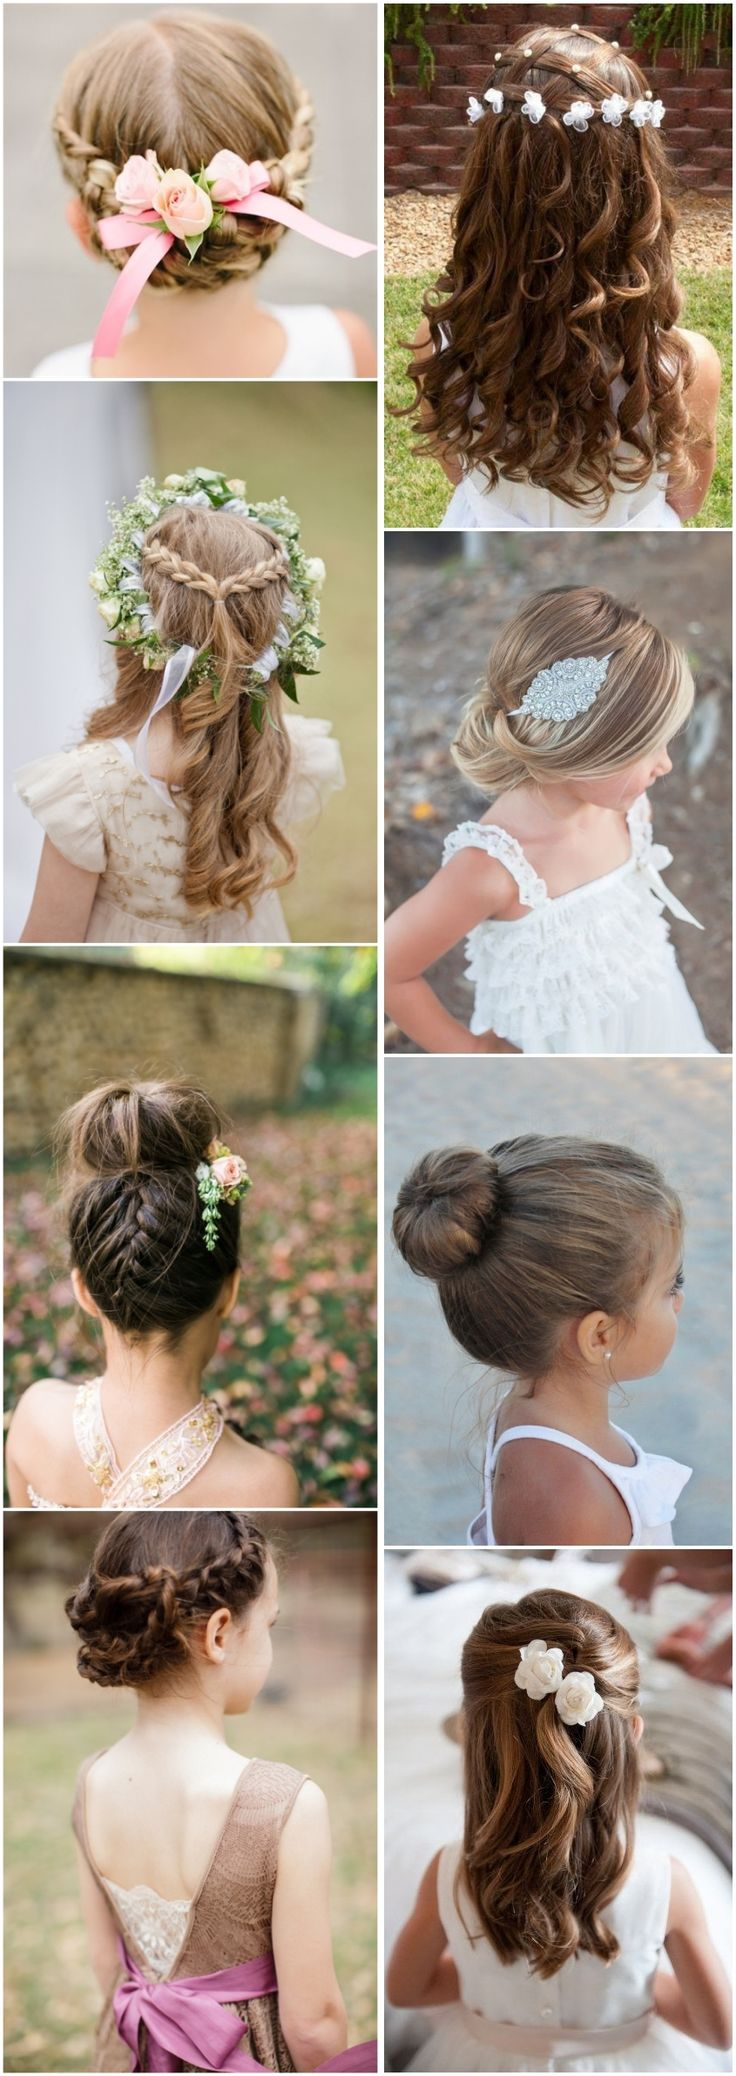 wedding hair styles for little girls best 25 updo ideas on updo 8487 | 9cbe5517788ab9af18a259279dd35df6